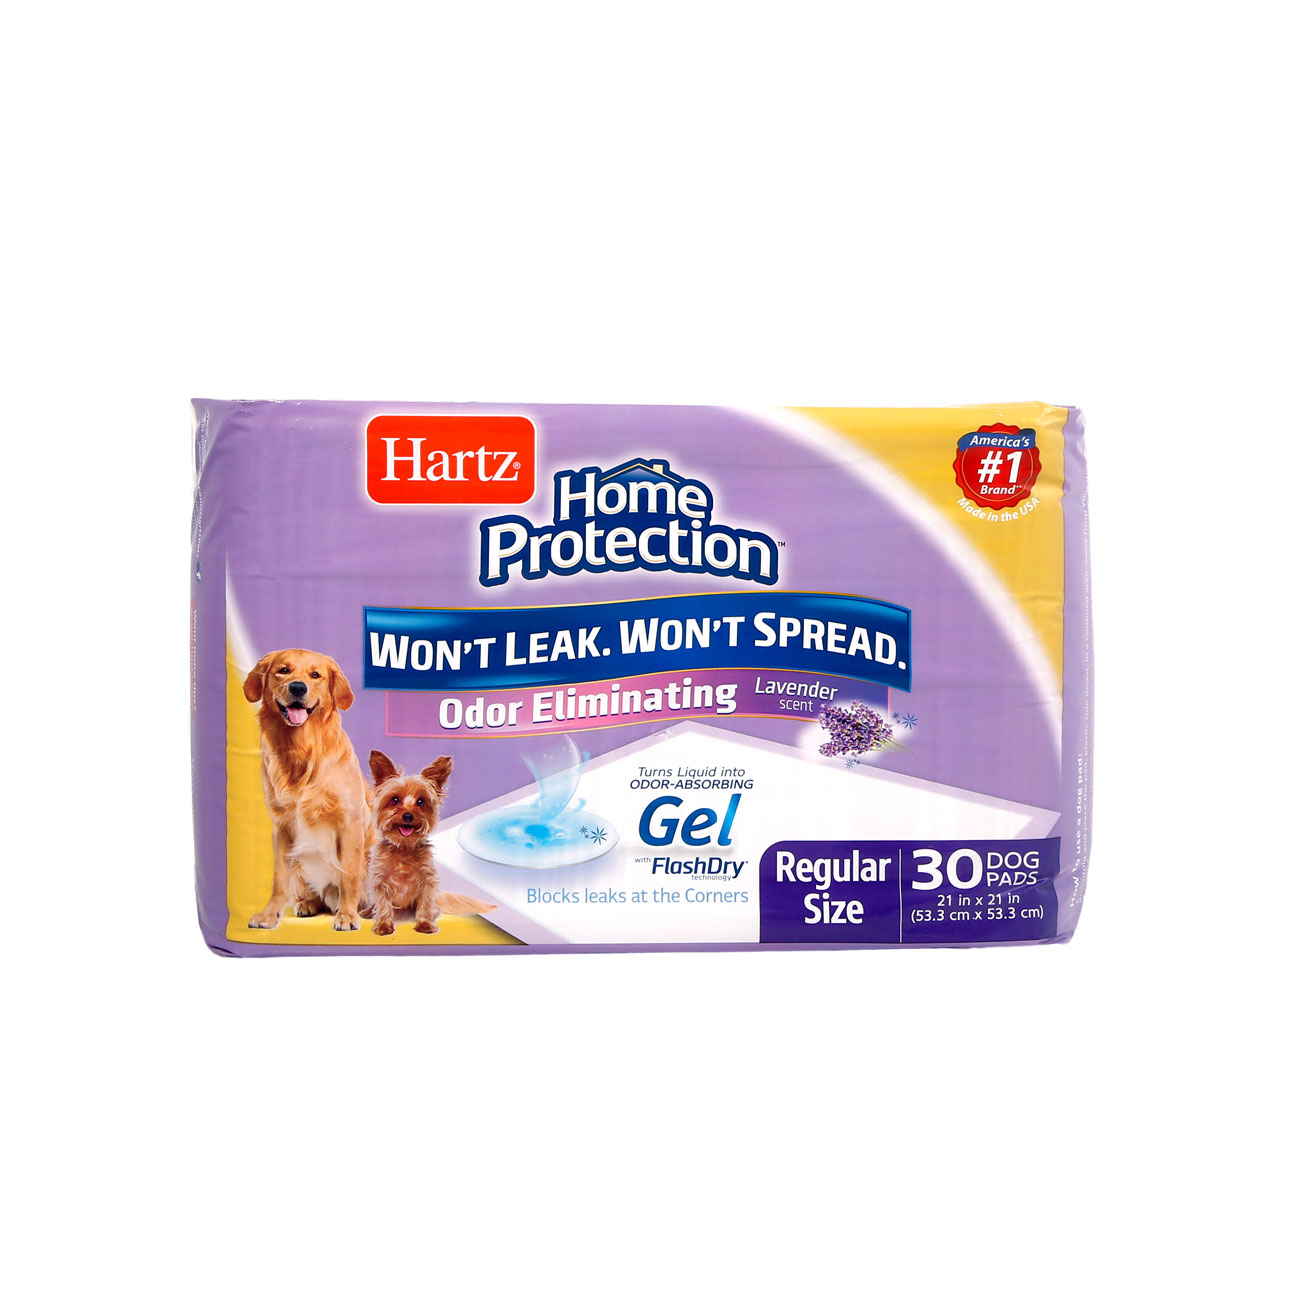 Front of Hartz Home Protection Odor Eliminating Dog Pads. There are two dogs and an illustration of a dog pad on the package, Hartz SKU 3270014837